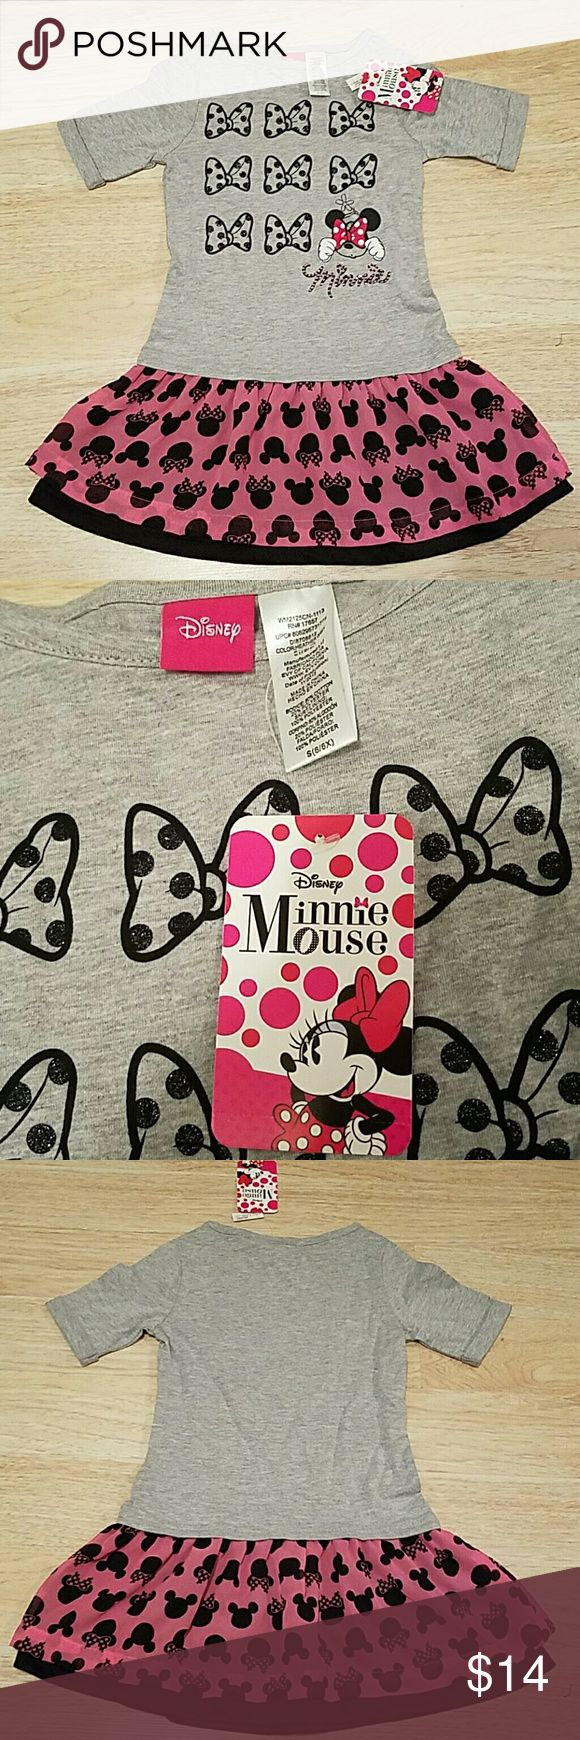 NWT Authentic Disney Girls Minnie Mouse Dress 2 available, both size 6/6X. Authentic Disney brand and just adorable! Disney Dresses